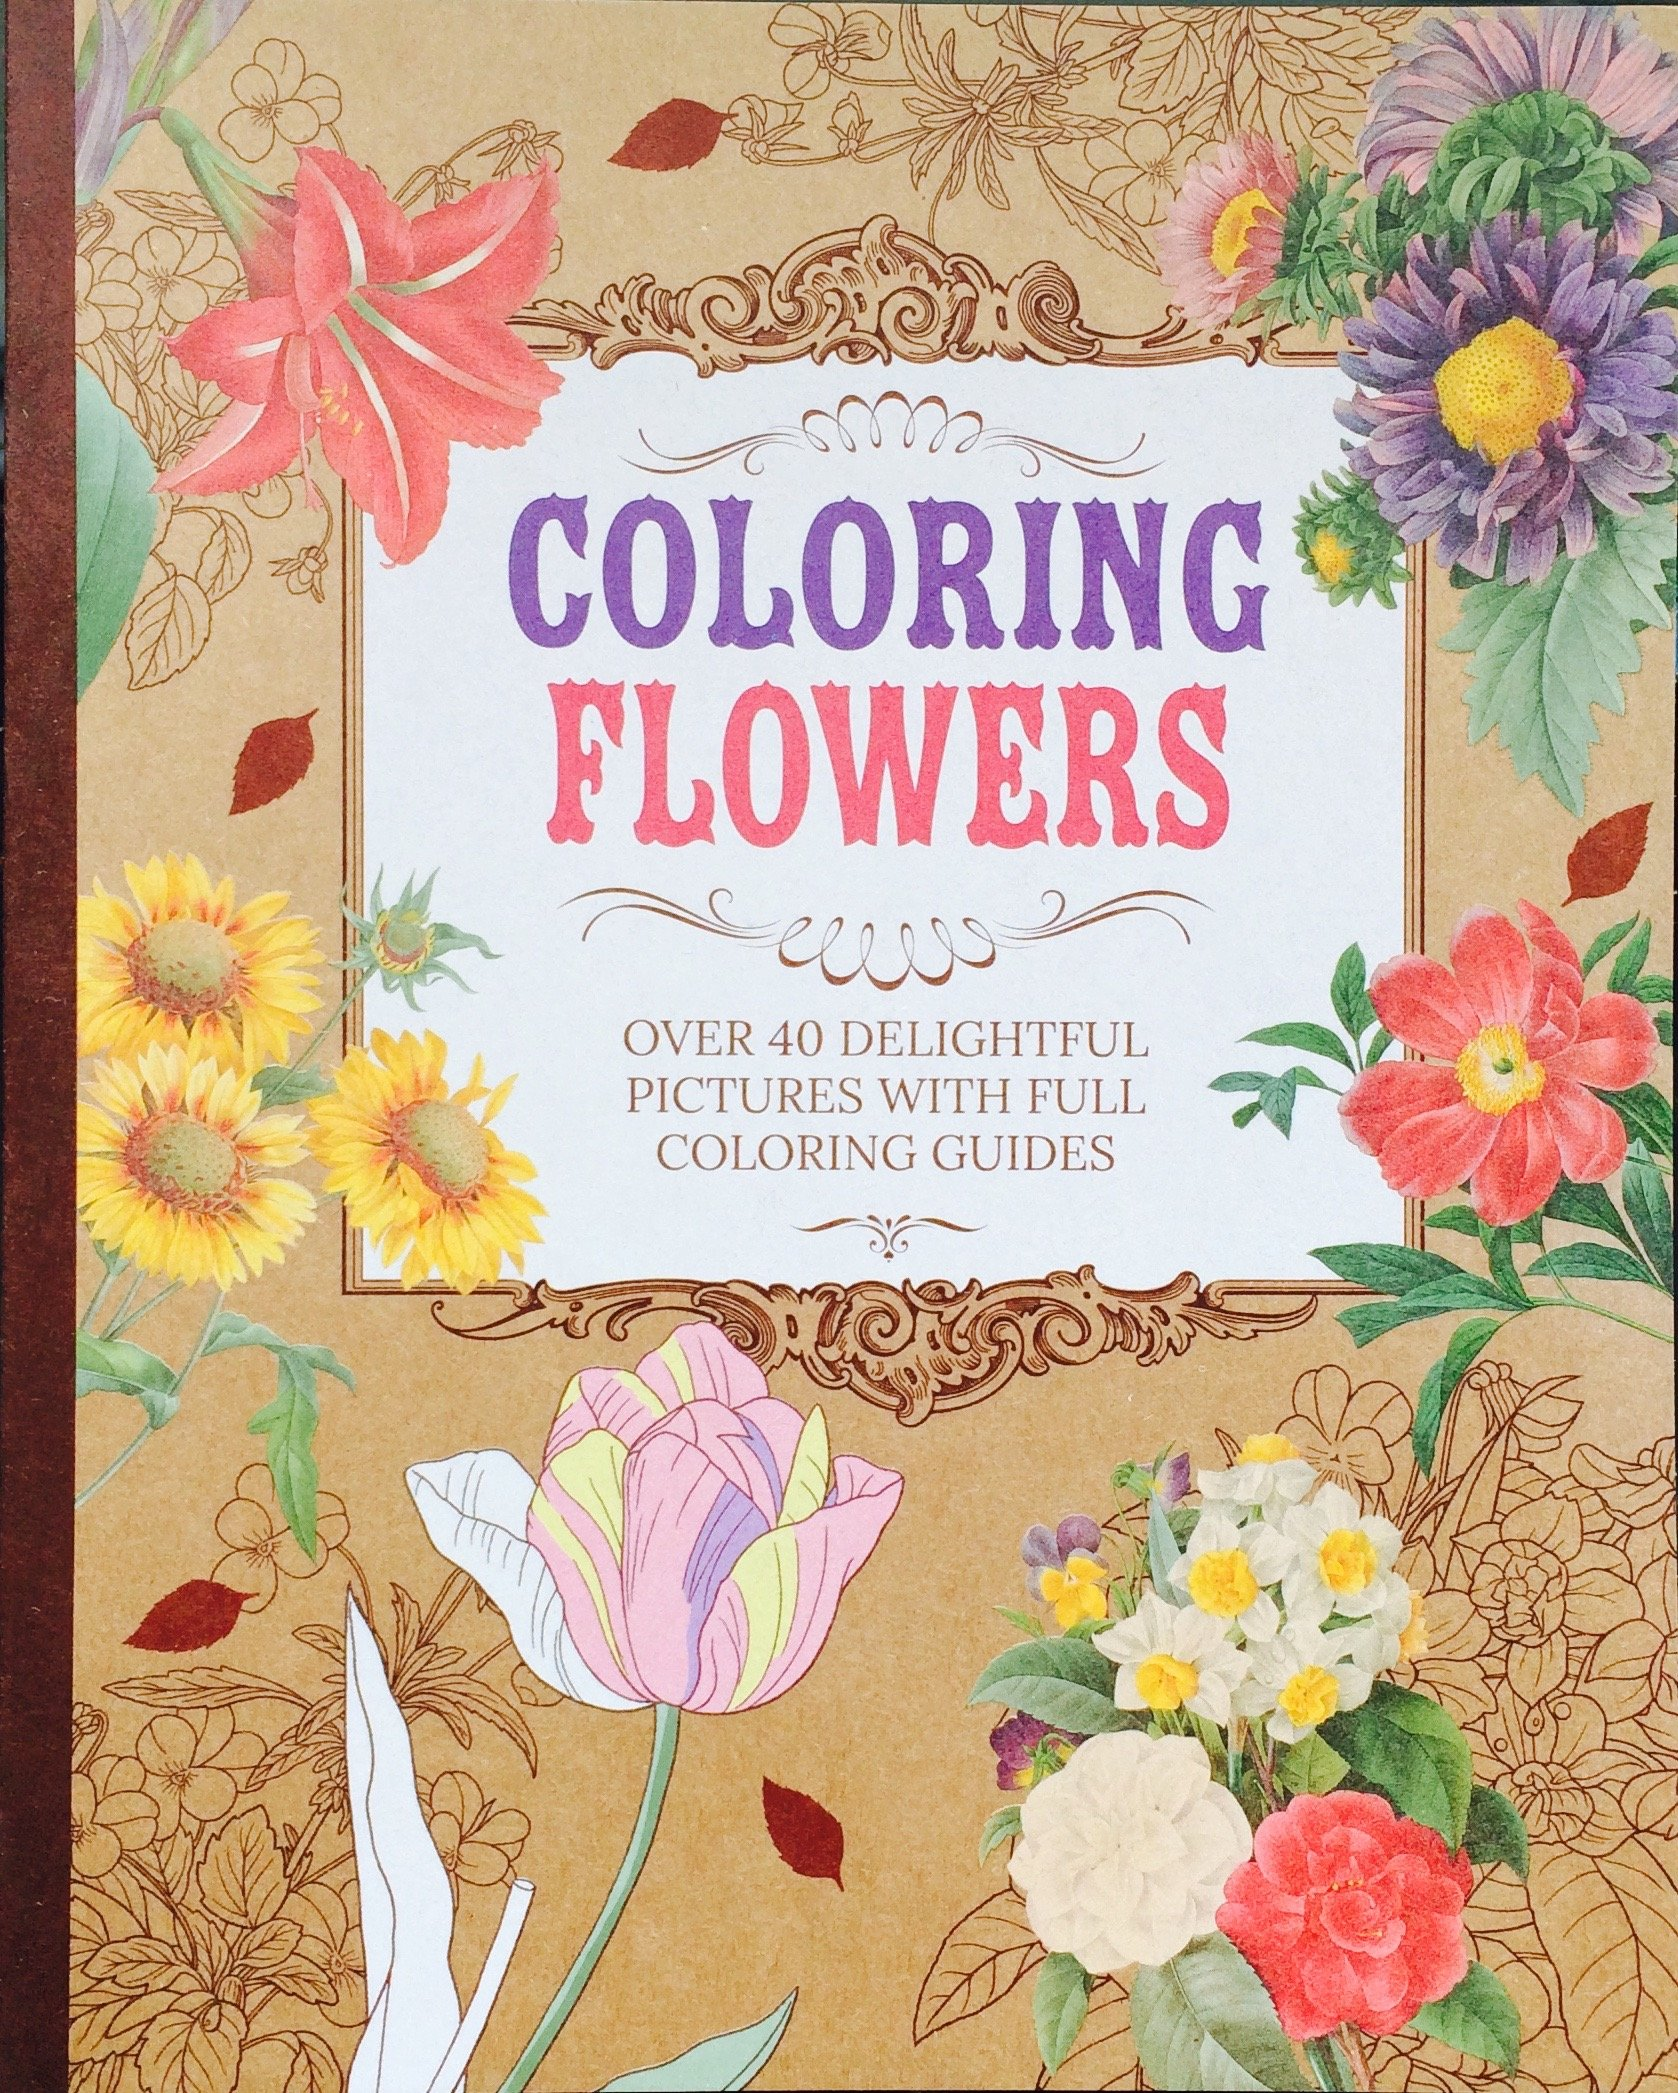 COLORING FLOWERS: Over 40 Delightful Pictures With Full Coloring Guides ebook